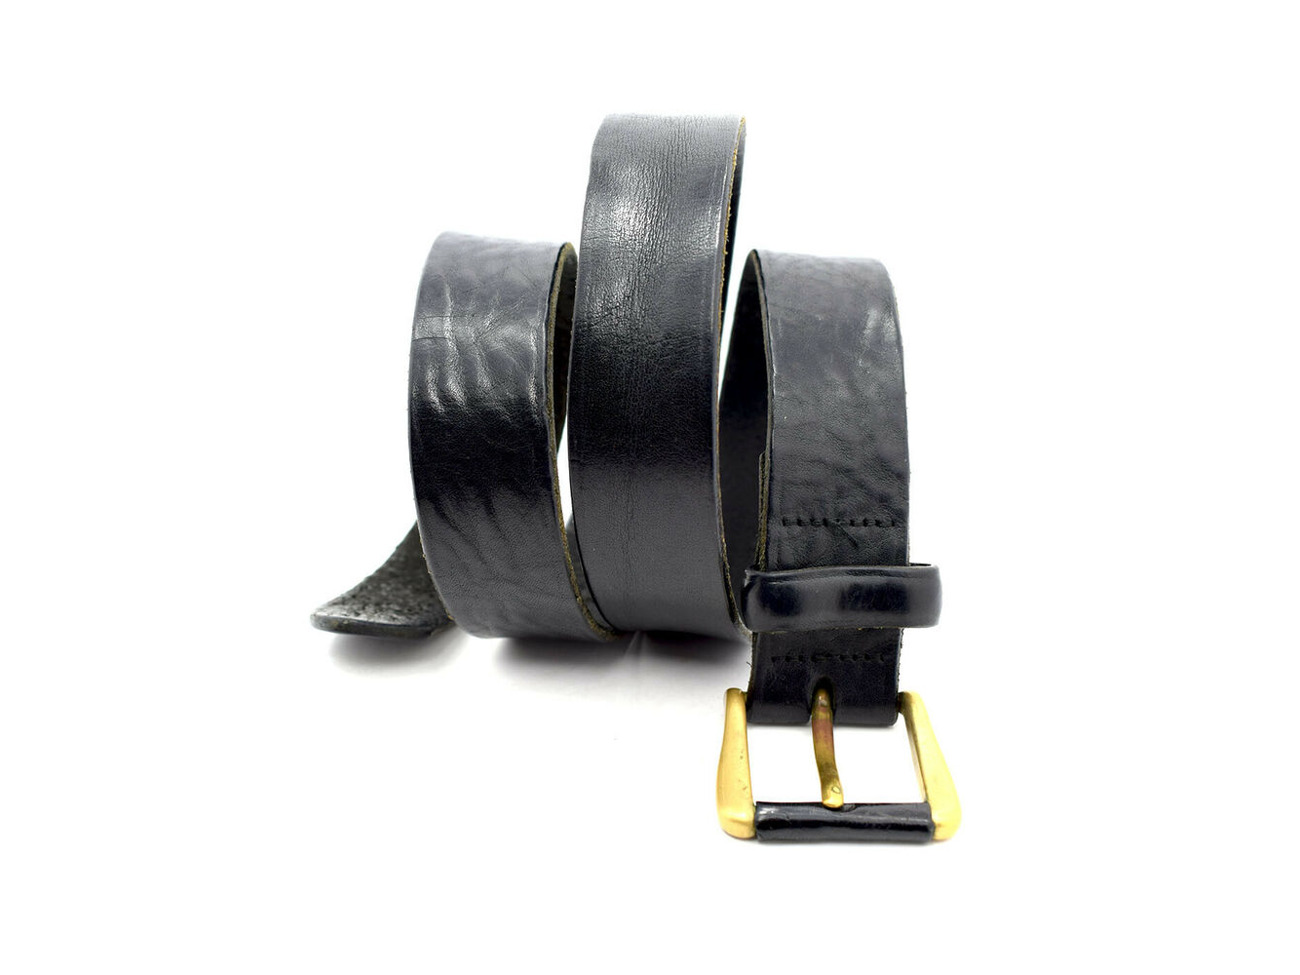 Rent Austin Reed Vintage Mens Leather Belt Black Size 34 In London Rent For 0 00 Day